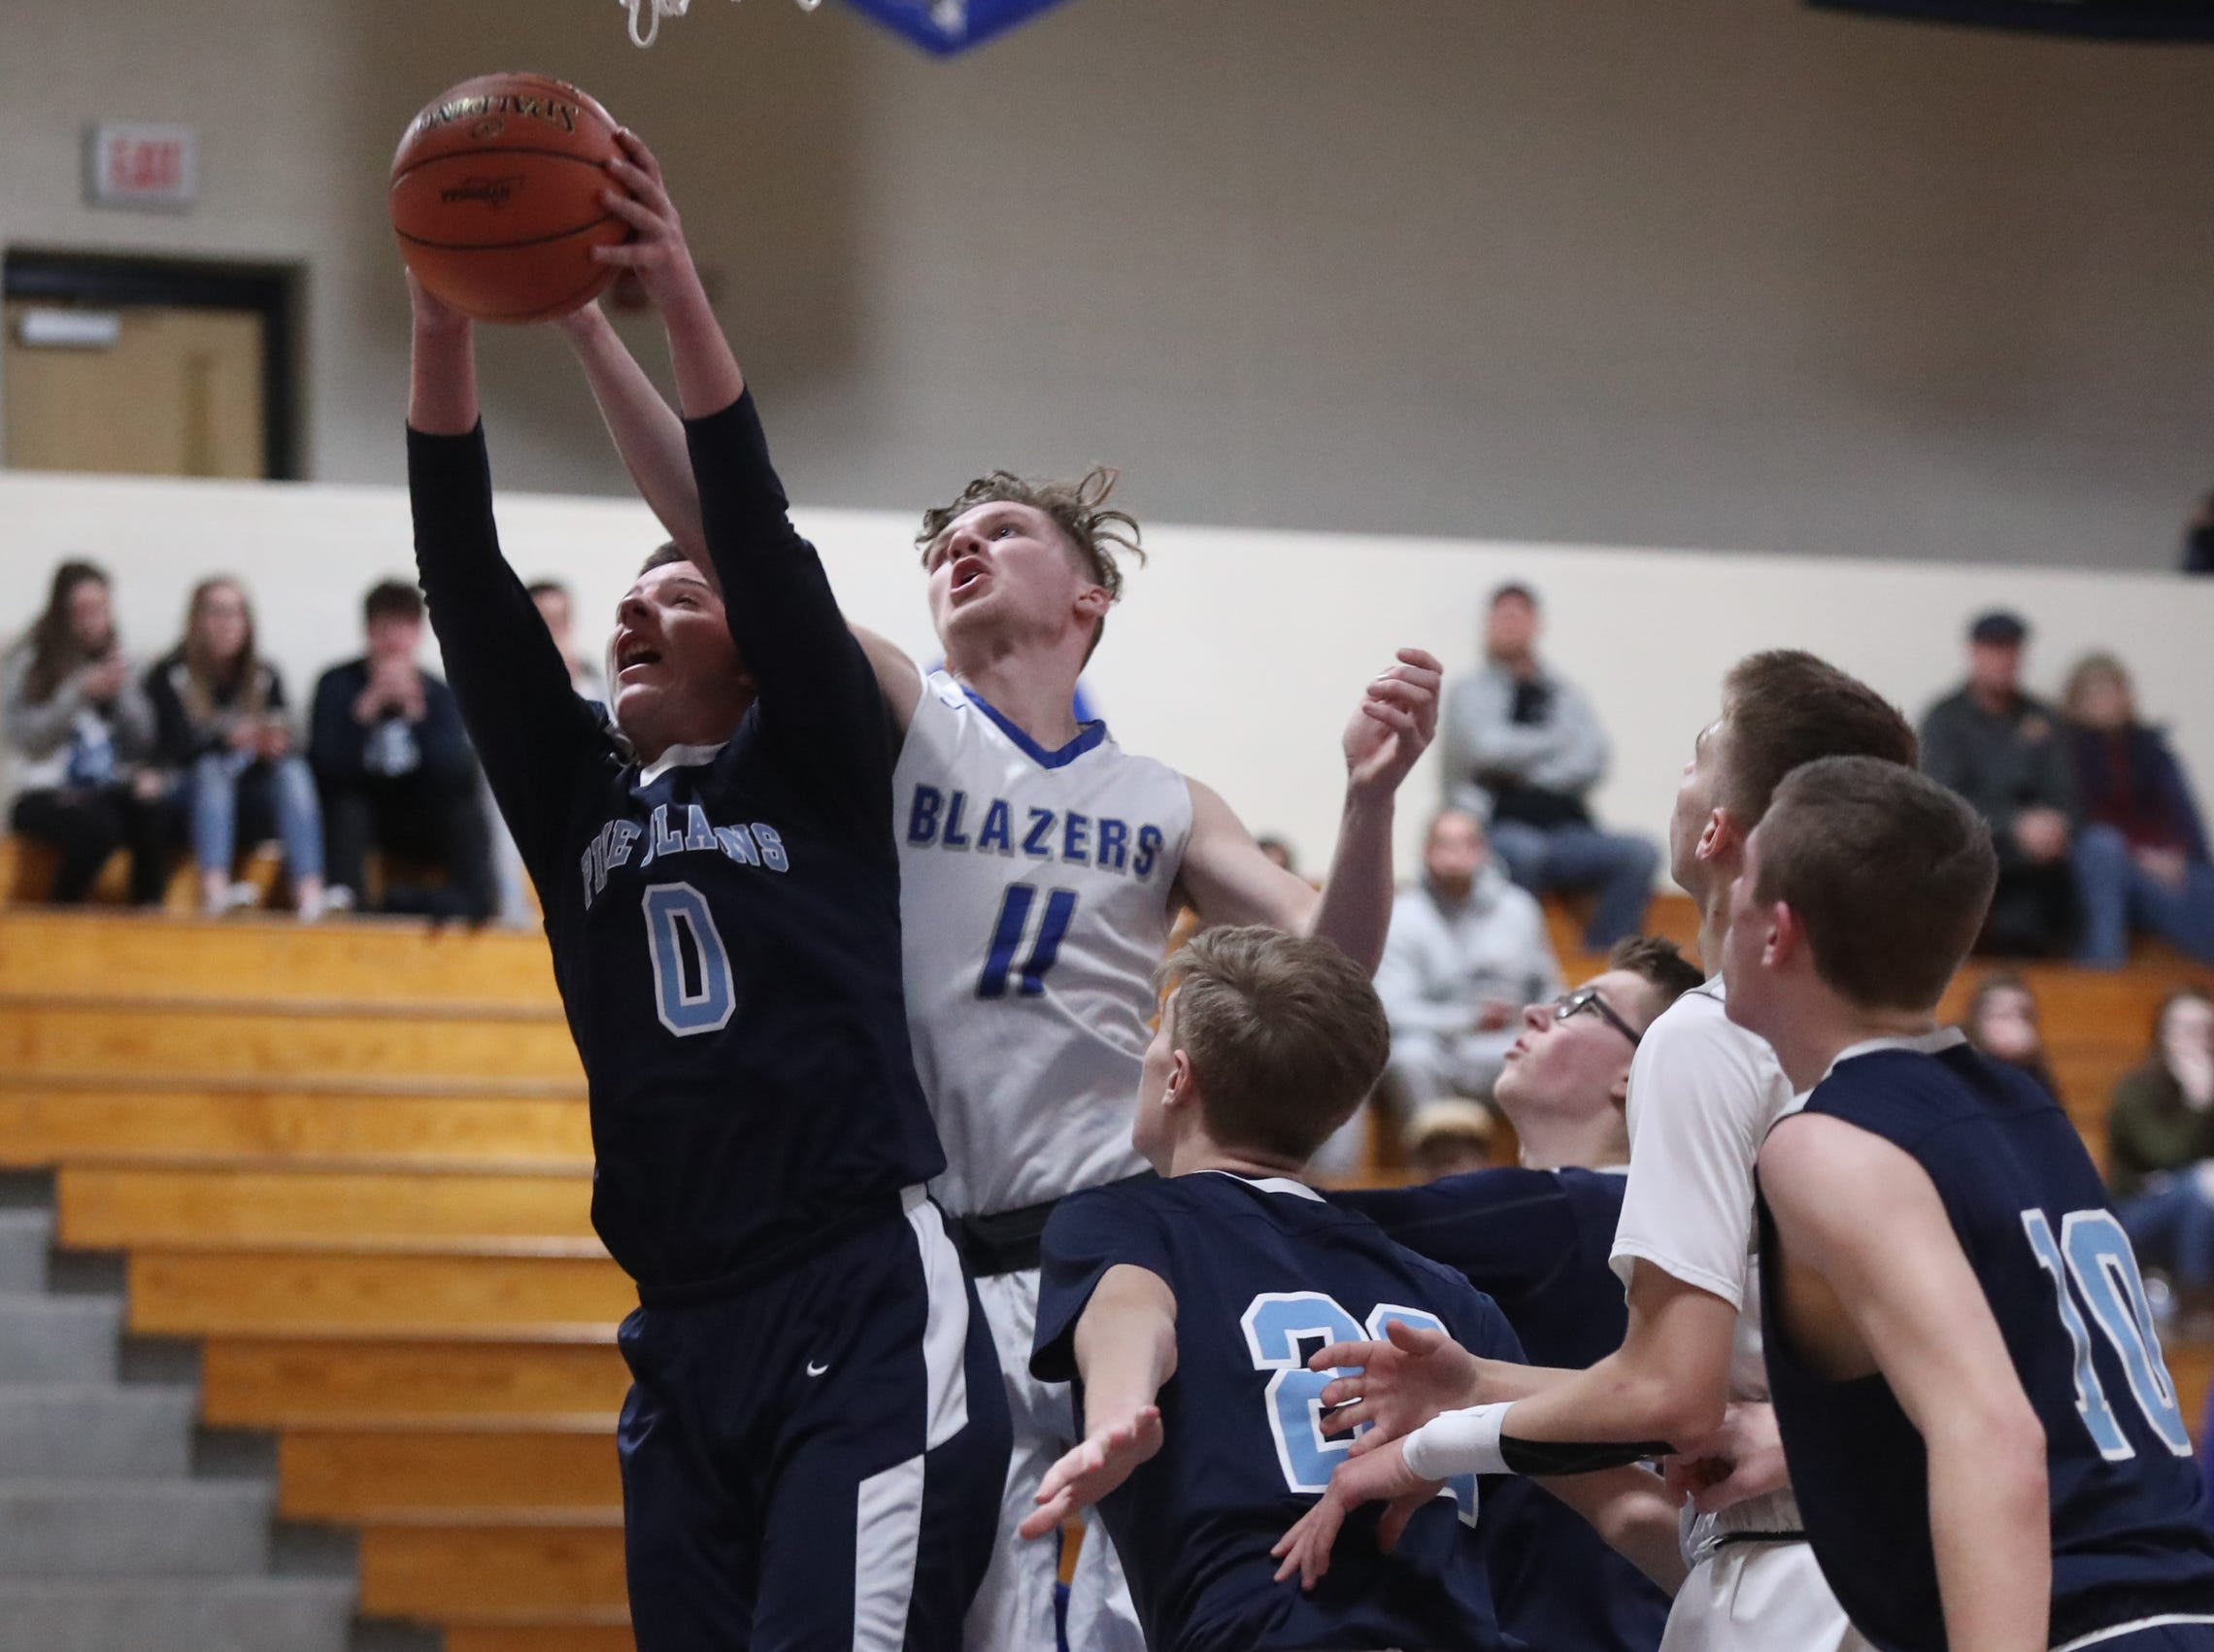 Pine Plains' Evan Proper (0) and Millbrook's Steven Szalwicz (11) battle for a rebound in the boys Class C section final basketball game at Mount St. Mary College in Newburgh on Thursday, February 28, 2019.